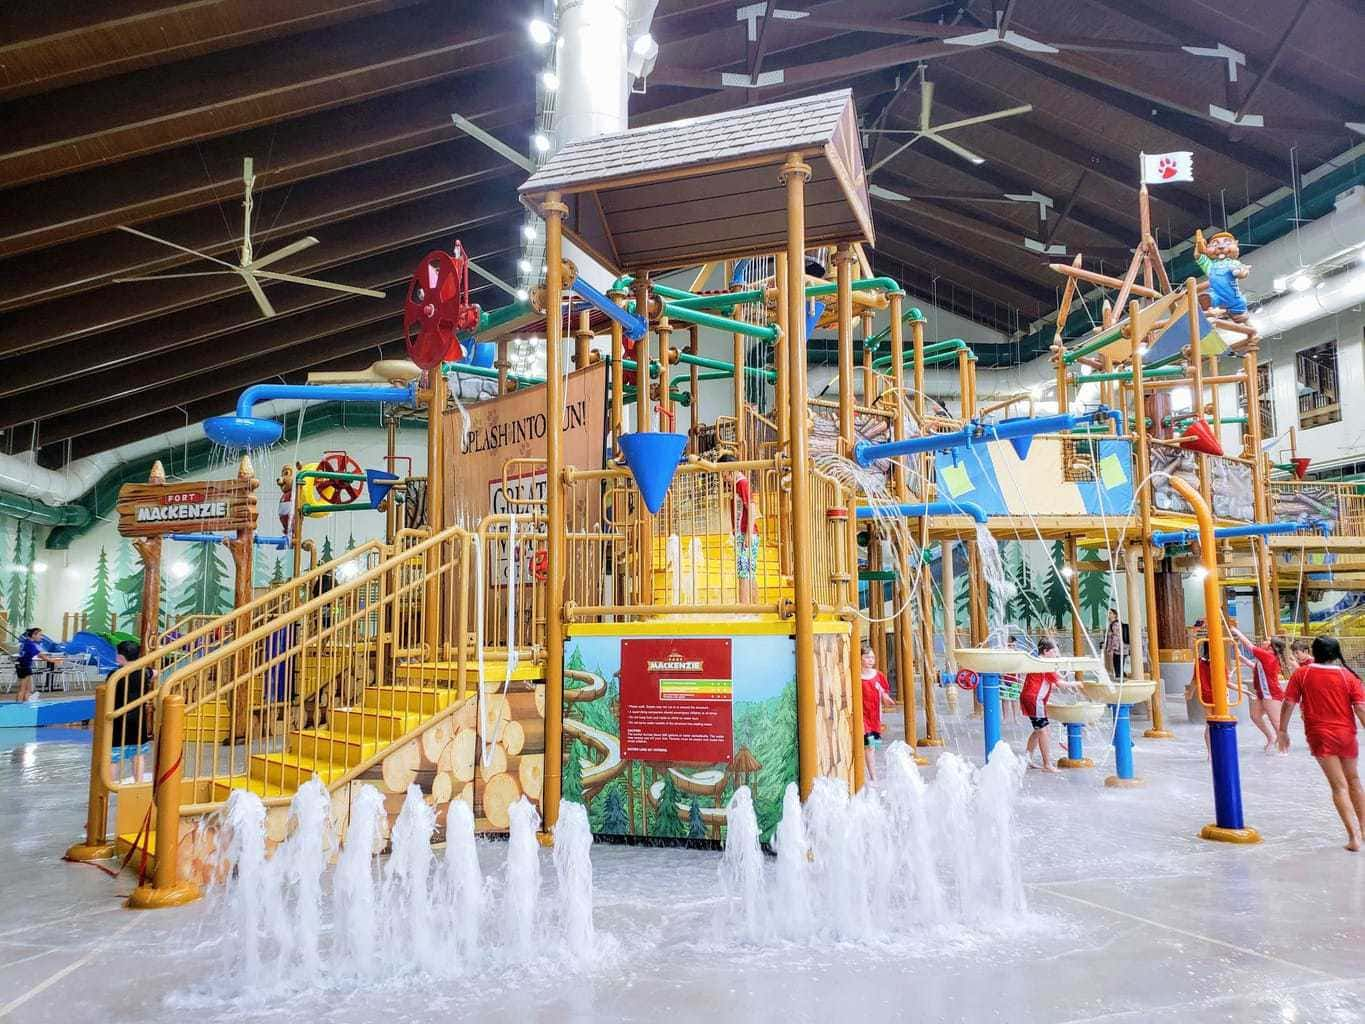 If you've been searching for a place where you can literally enjoy everything under one roof, Great Wolf Lodge in Georgia is waiting for you to book your reservation. It's no exaggeration that there was literally something for everyone to do, and there wasn't a moment of downtime to even worry about. We've compiled 5 great reasons you should stay at the Great Wolf Lodge.